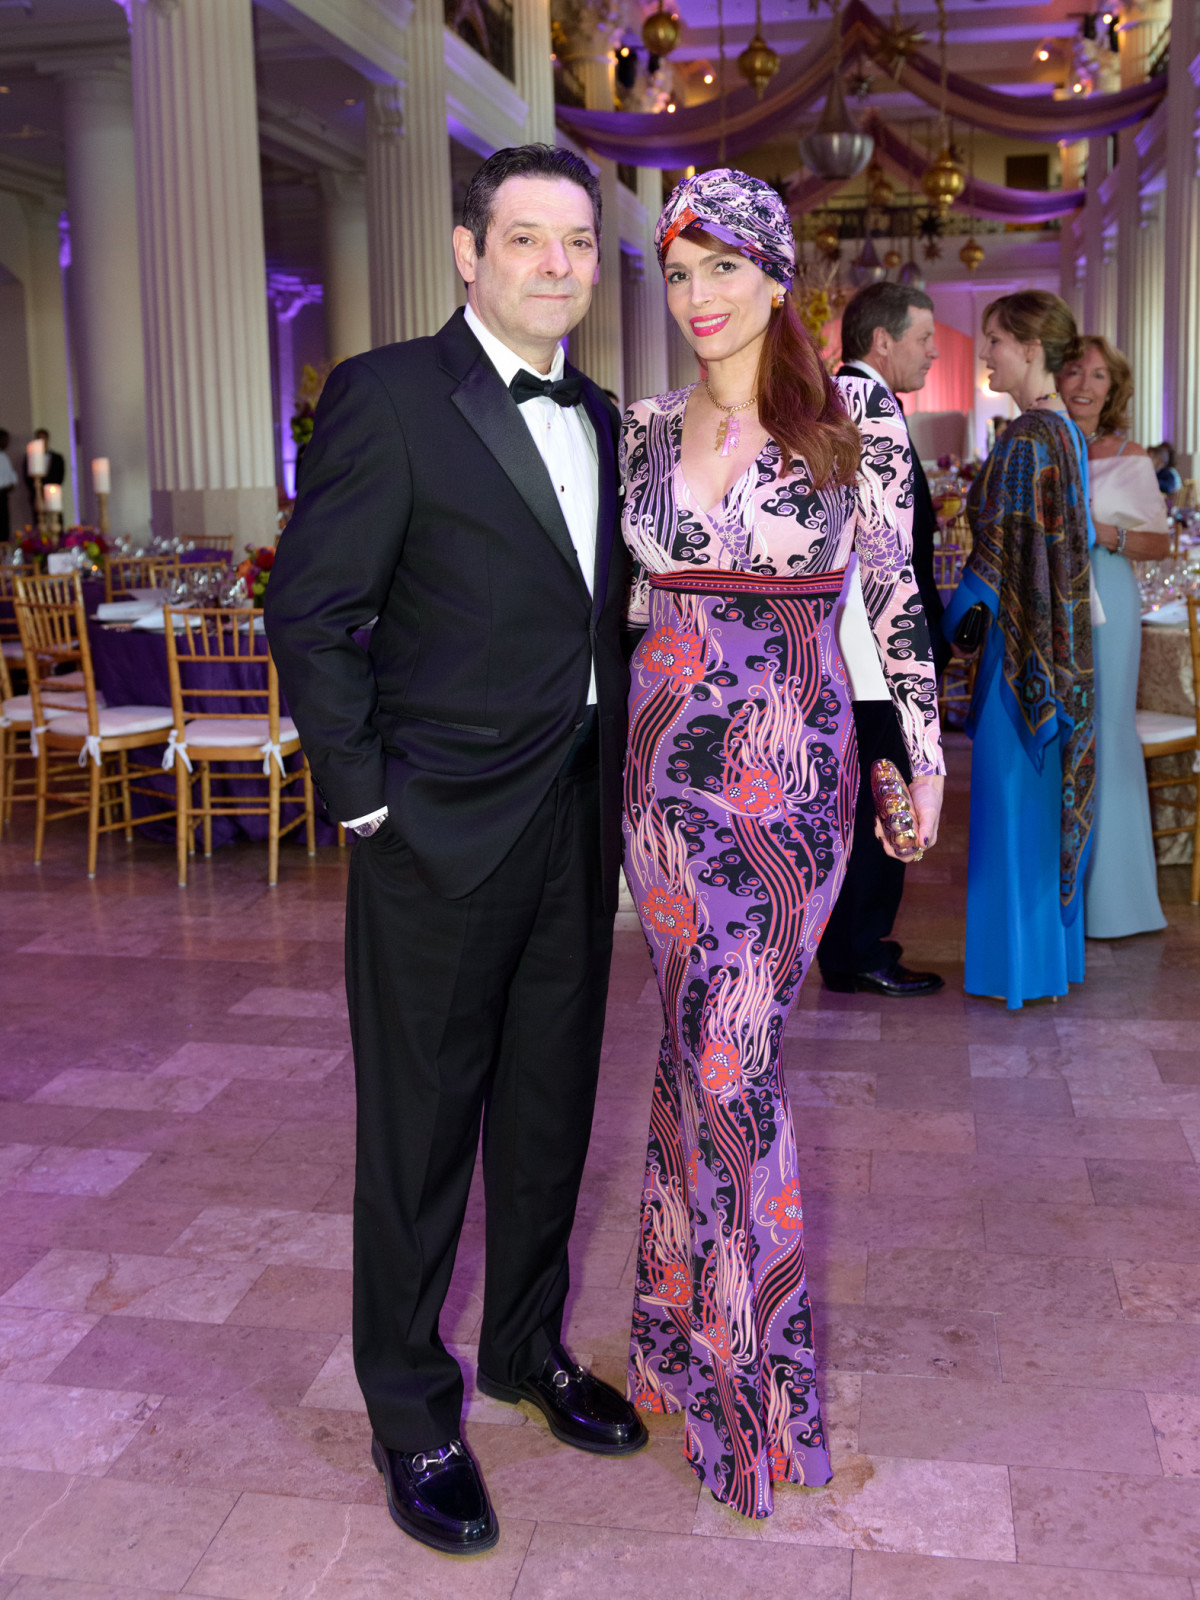 SPA, Gala April 2016, Carlos Barbieri, Karina Barbieri